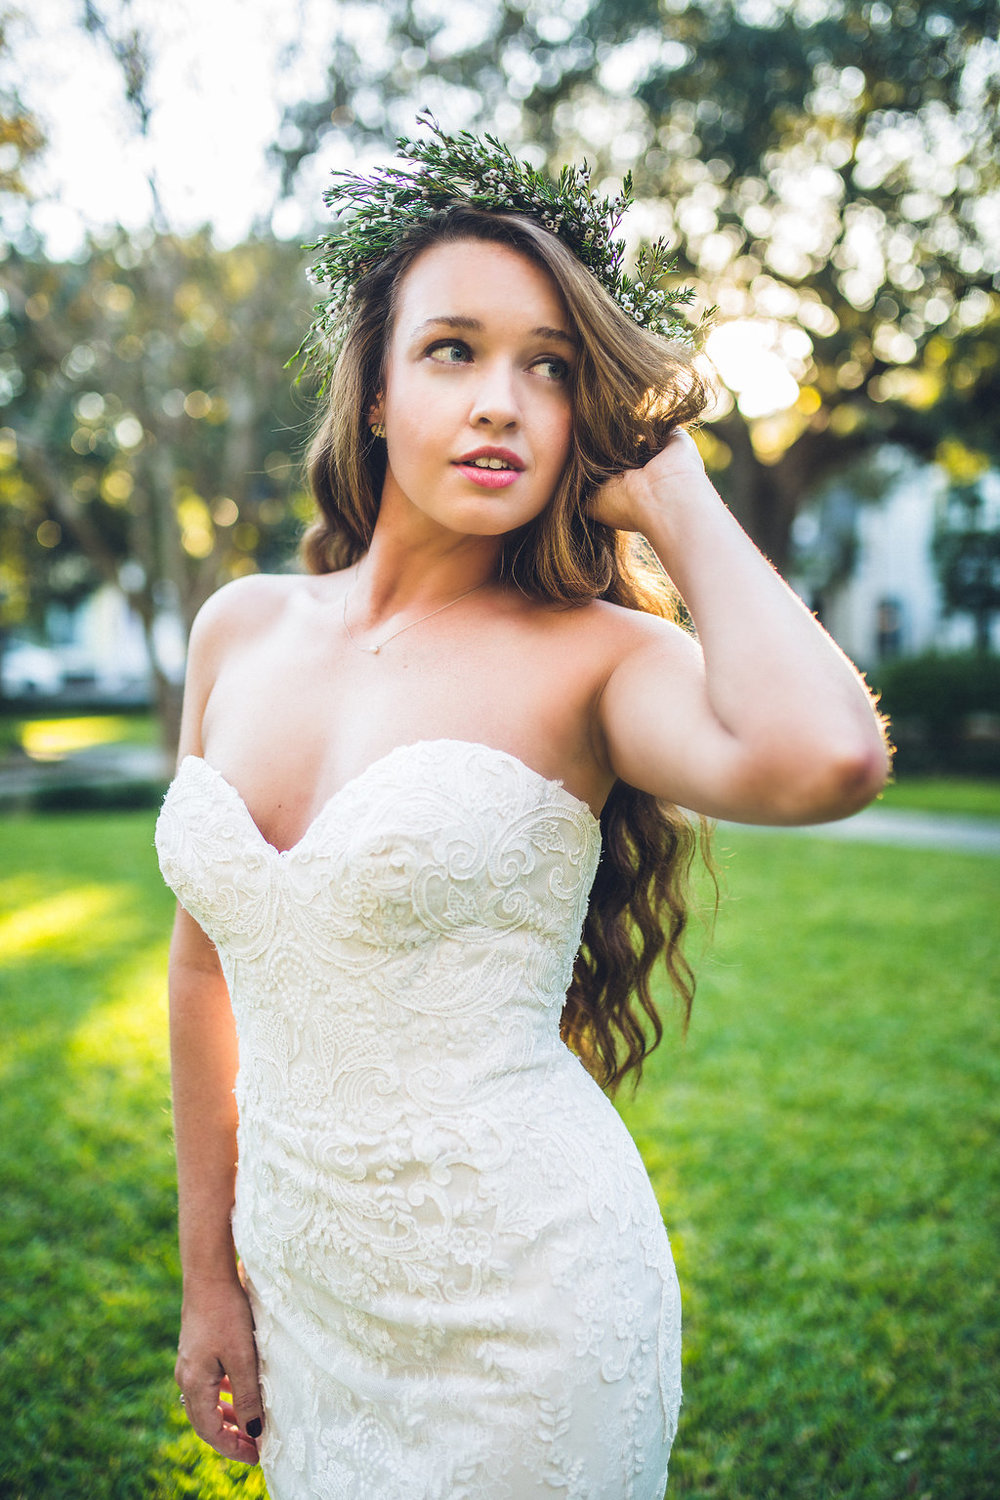 alexis-sweet-photography-ivory-and-beau-bridal-boutique-mirelle--maggie-sottero-rebecca-ingram-lace-mermaid-savannah-wedding-savannah-square-wedding-flower-crown-boho-bride-savannah-wedding-planner-savannah-bridal-boutique-savannah-florist-6.jpg